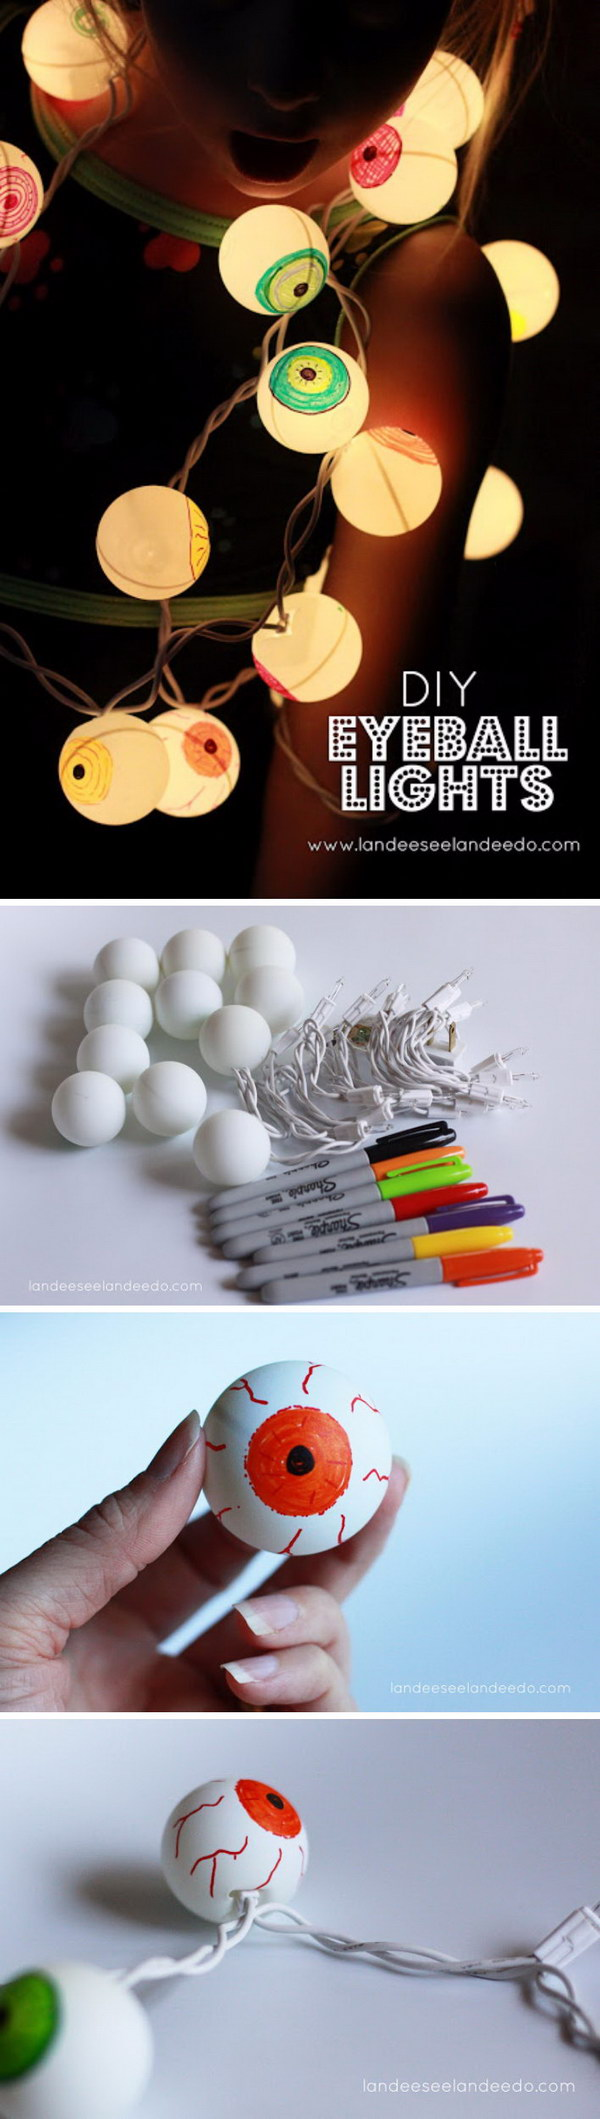 DIY Eyeball Lights for Halloween Using Ping Pong Balls.